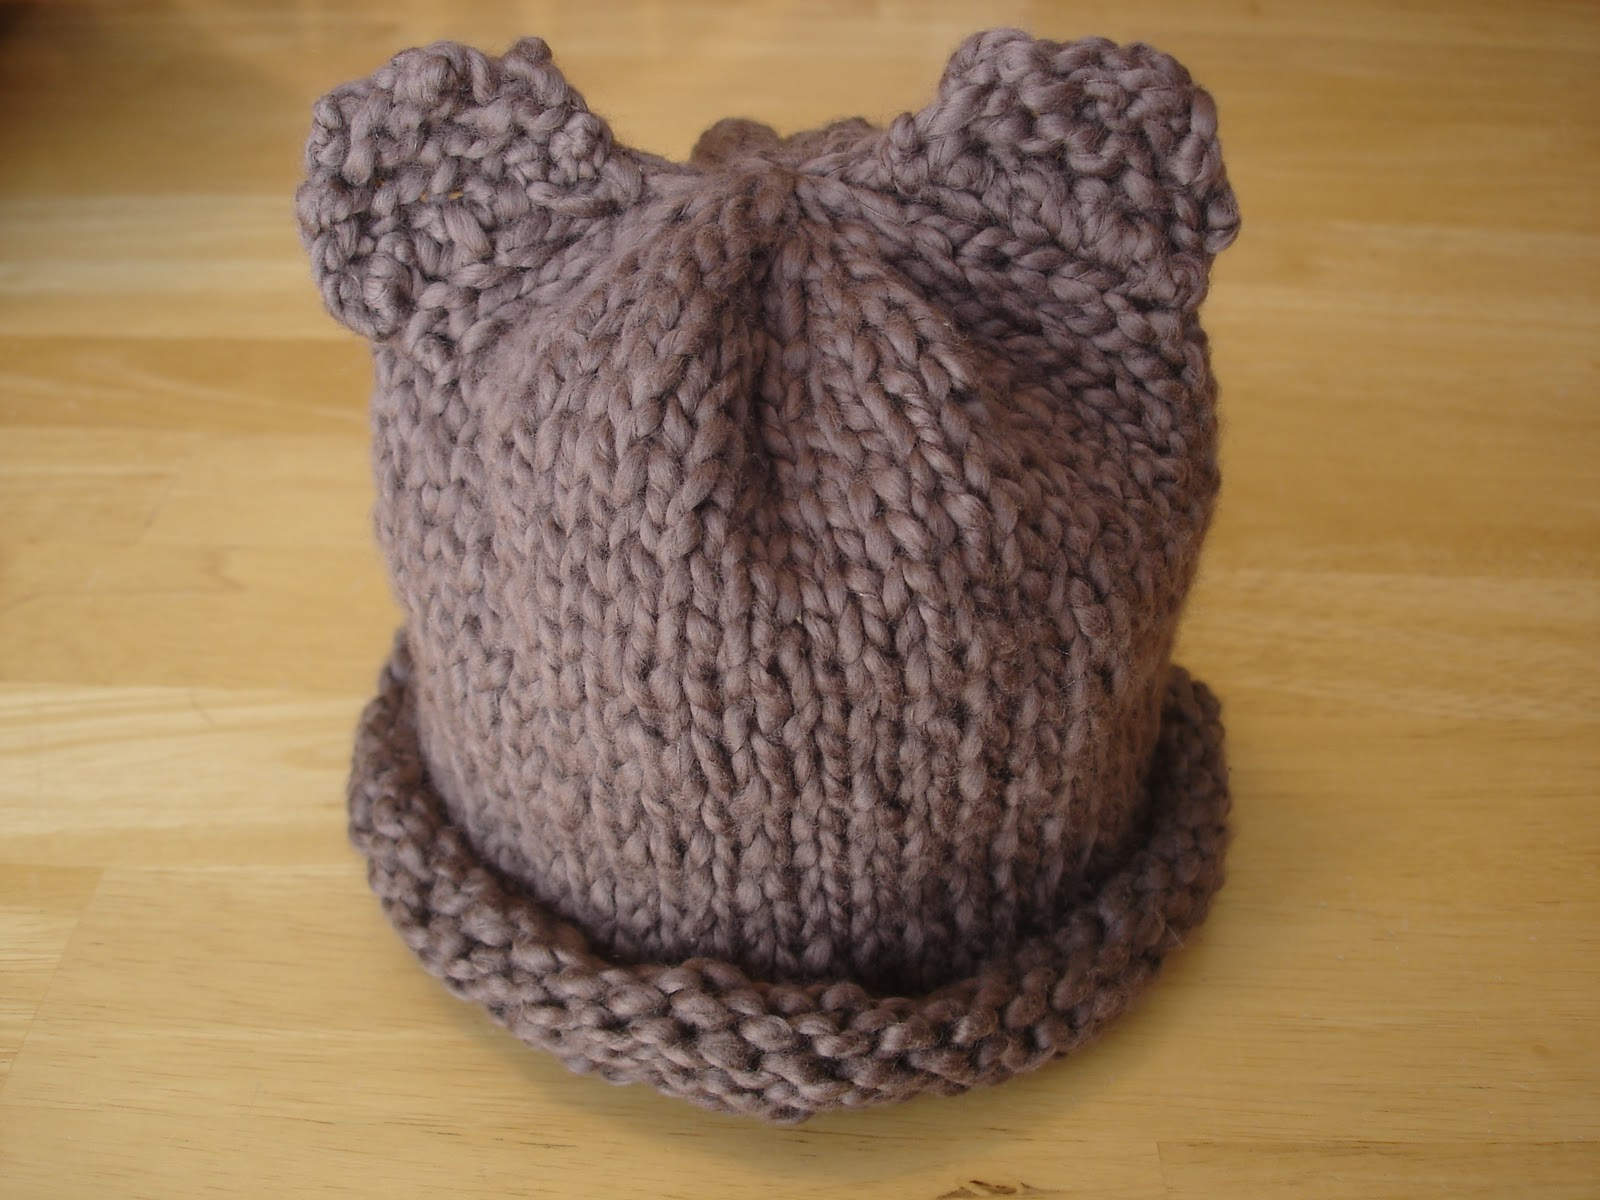 Knitting Pattern Hat For Newborn : Fiber Flux: Free Knitting Pattern...Baby Bear Hat for Preemie, Newborn, and B...